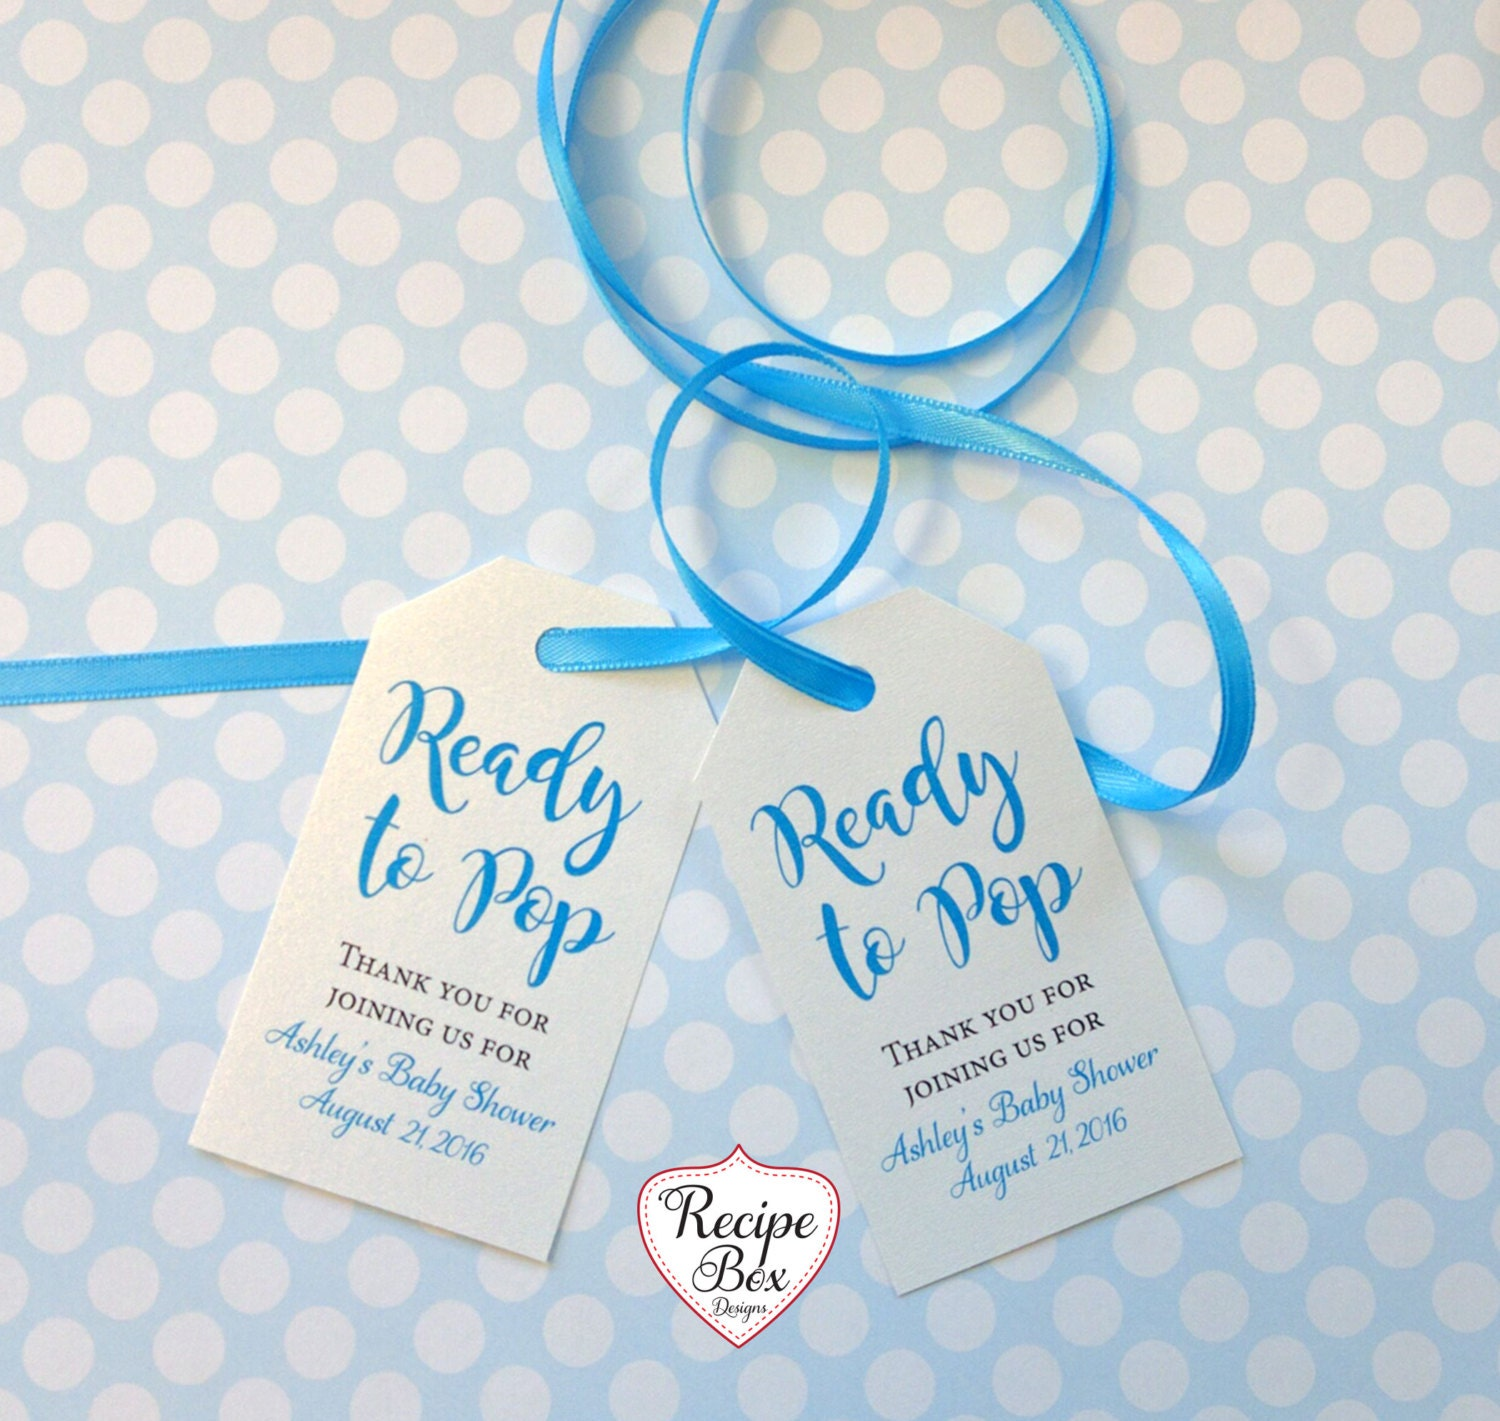 Baby shower favor tags baby shower tags ready to pop girl - Baby shower favor tags ...